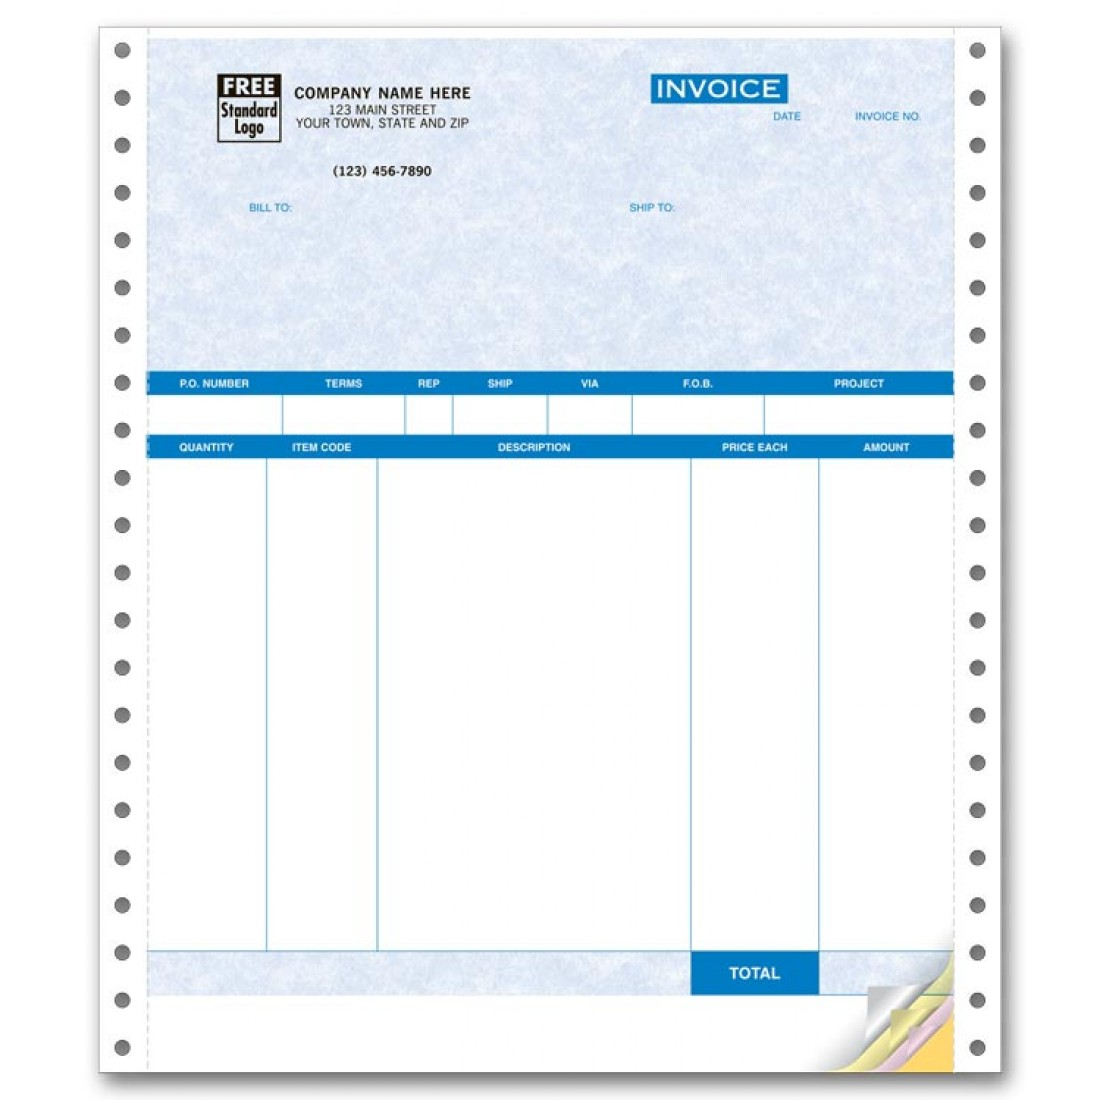 Continuous Product Invoice Compatible With QuickBooks No Packing - Quickbooks invoice logo size